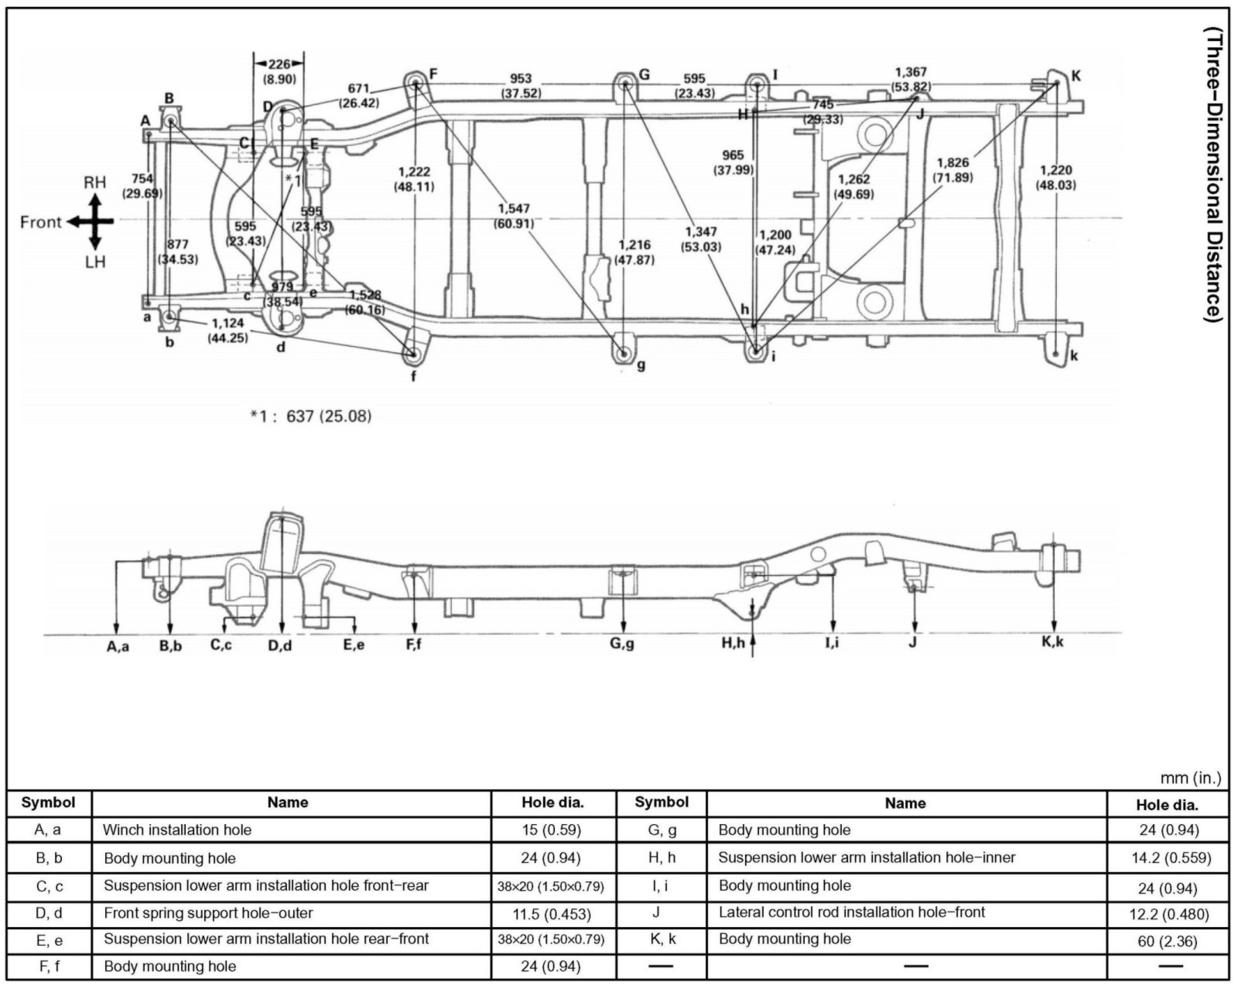 hight resolution of 2001 f150 frame diagram wiring diagrams terms 2001 ford f150 frame diagram 2001 f150 frame diagram